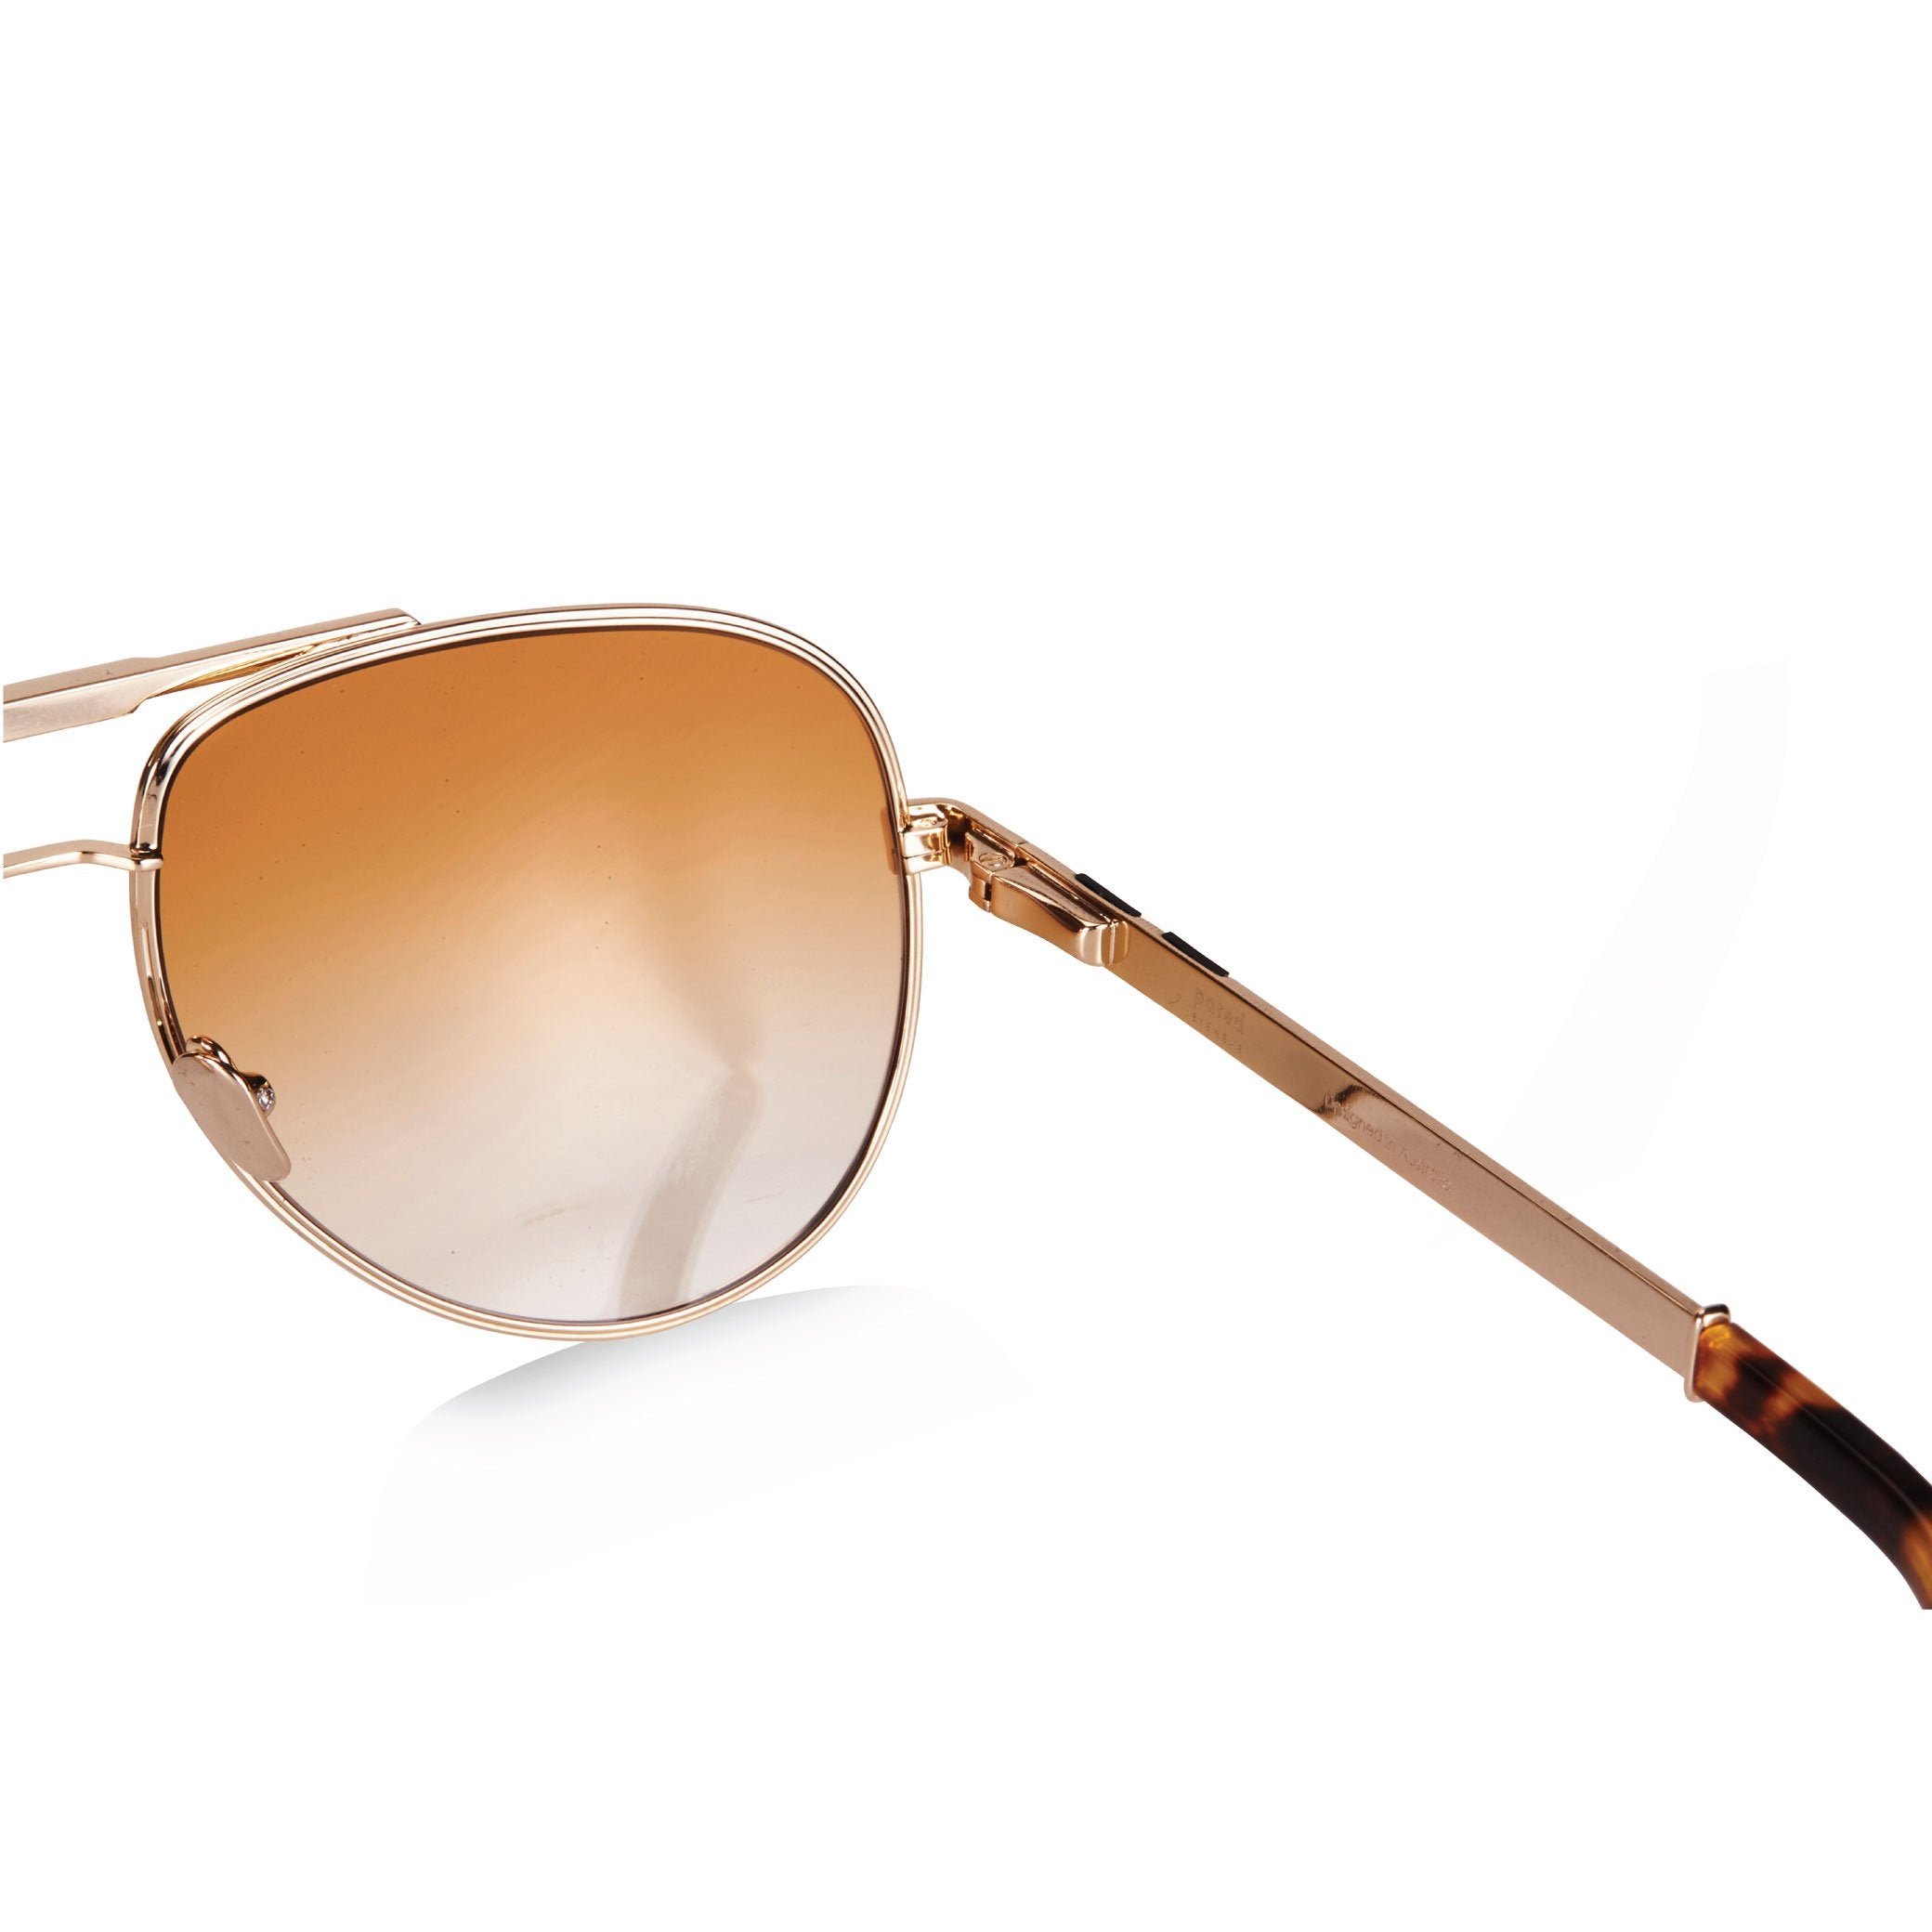 LOCK & LOAD / GOLD TORTOISE & TERRACOTTA GRADIENT LENS